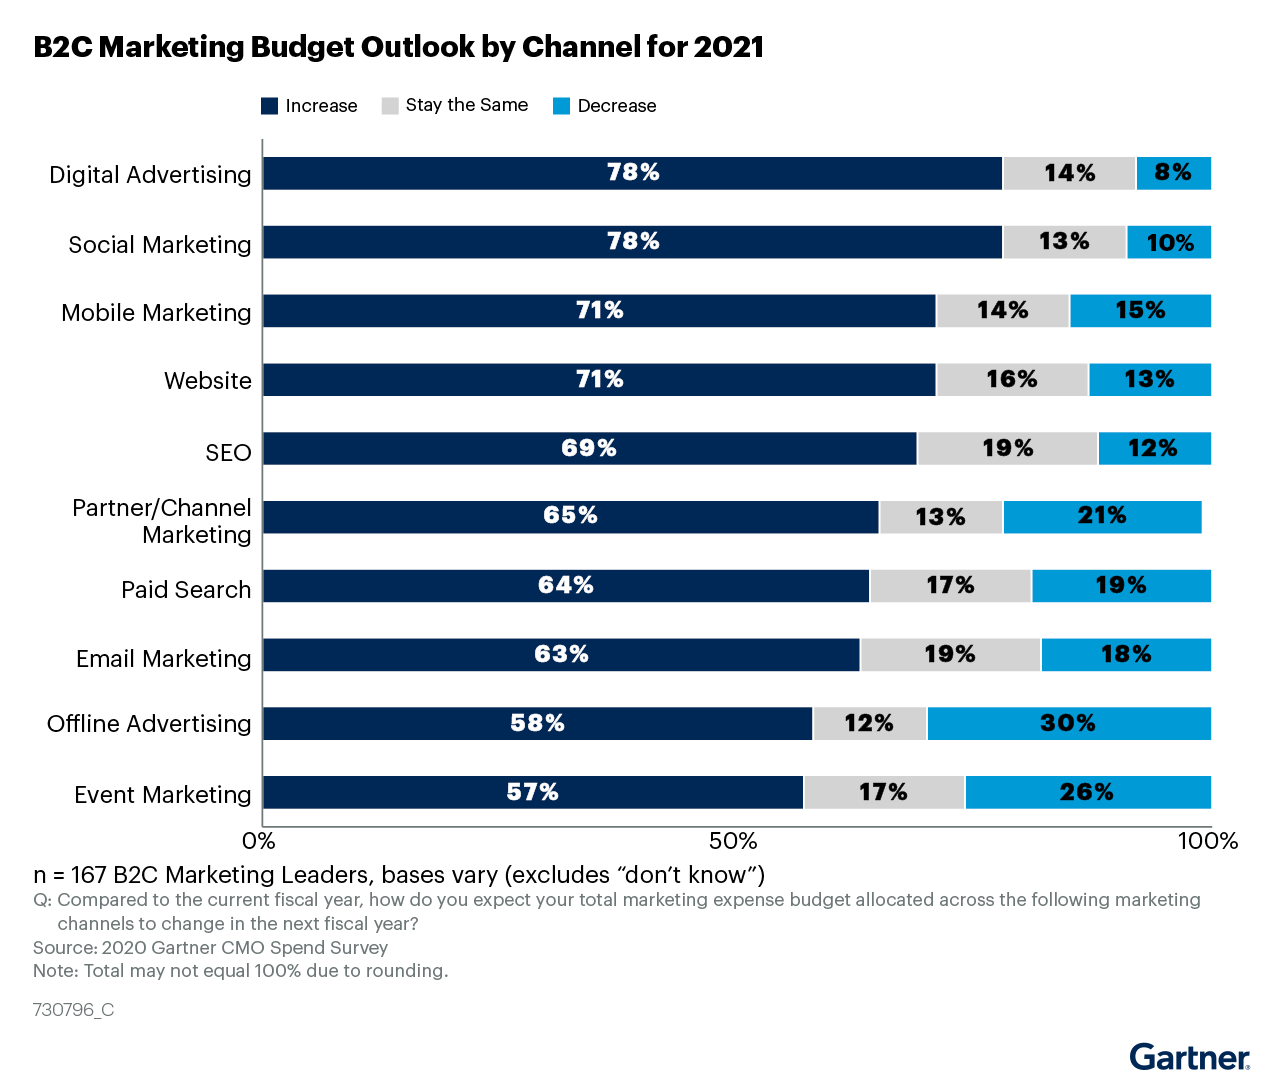 Figure 2. B2C Marketing Budget Outlook by Channel for 2021